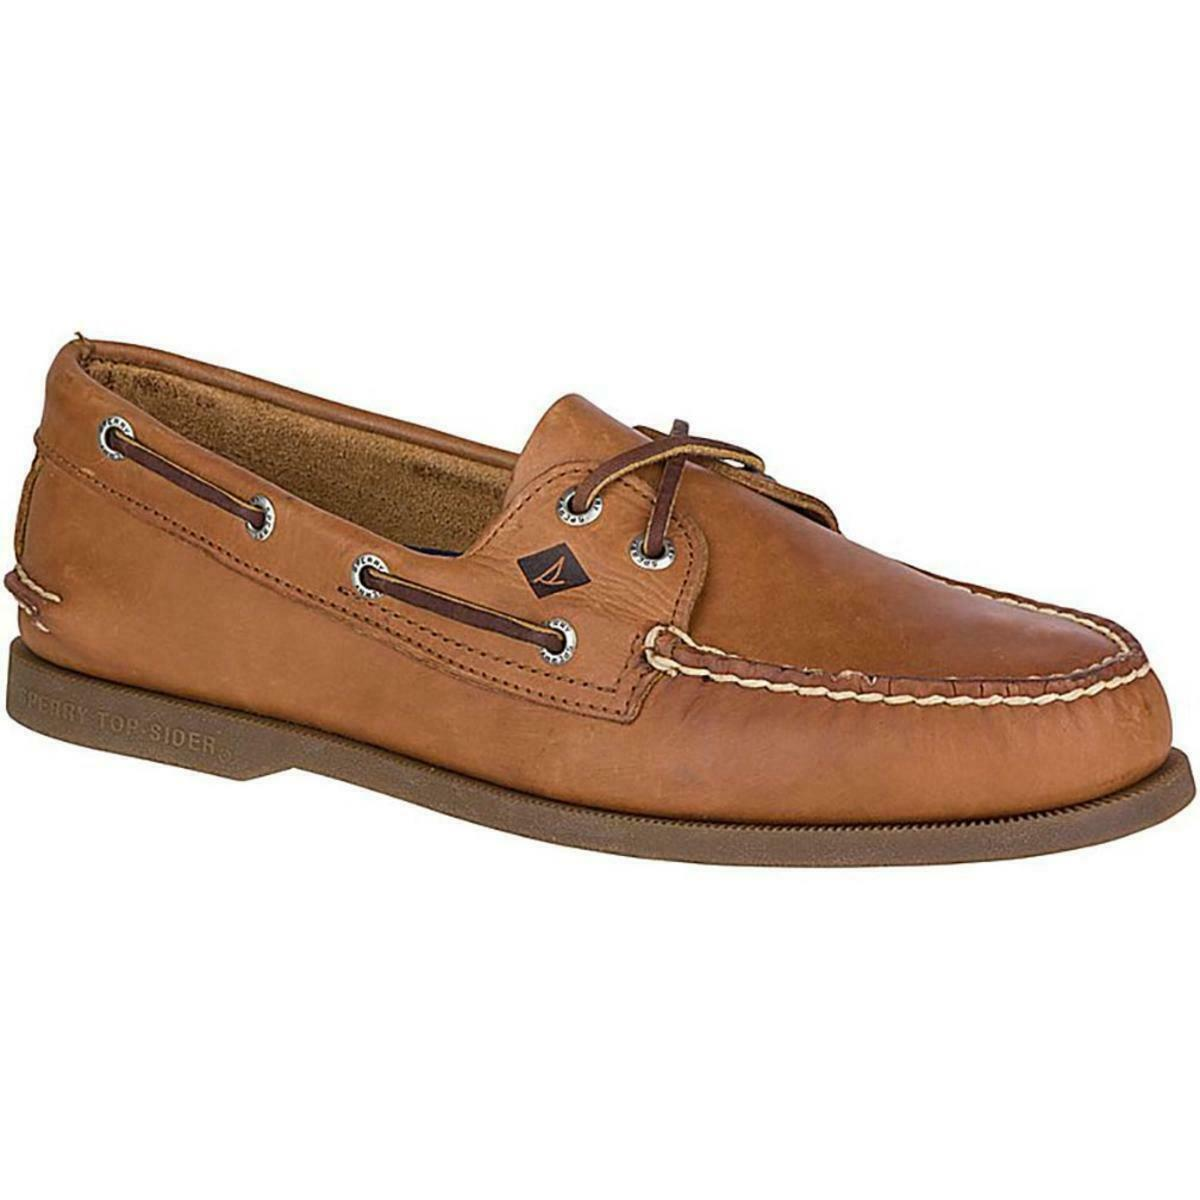 Sperry Top-Sider Authentic Original Mens Sahara Boat shoes 0197640